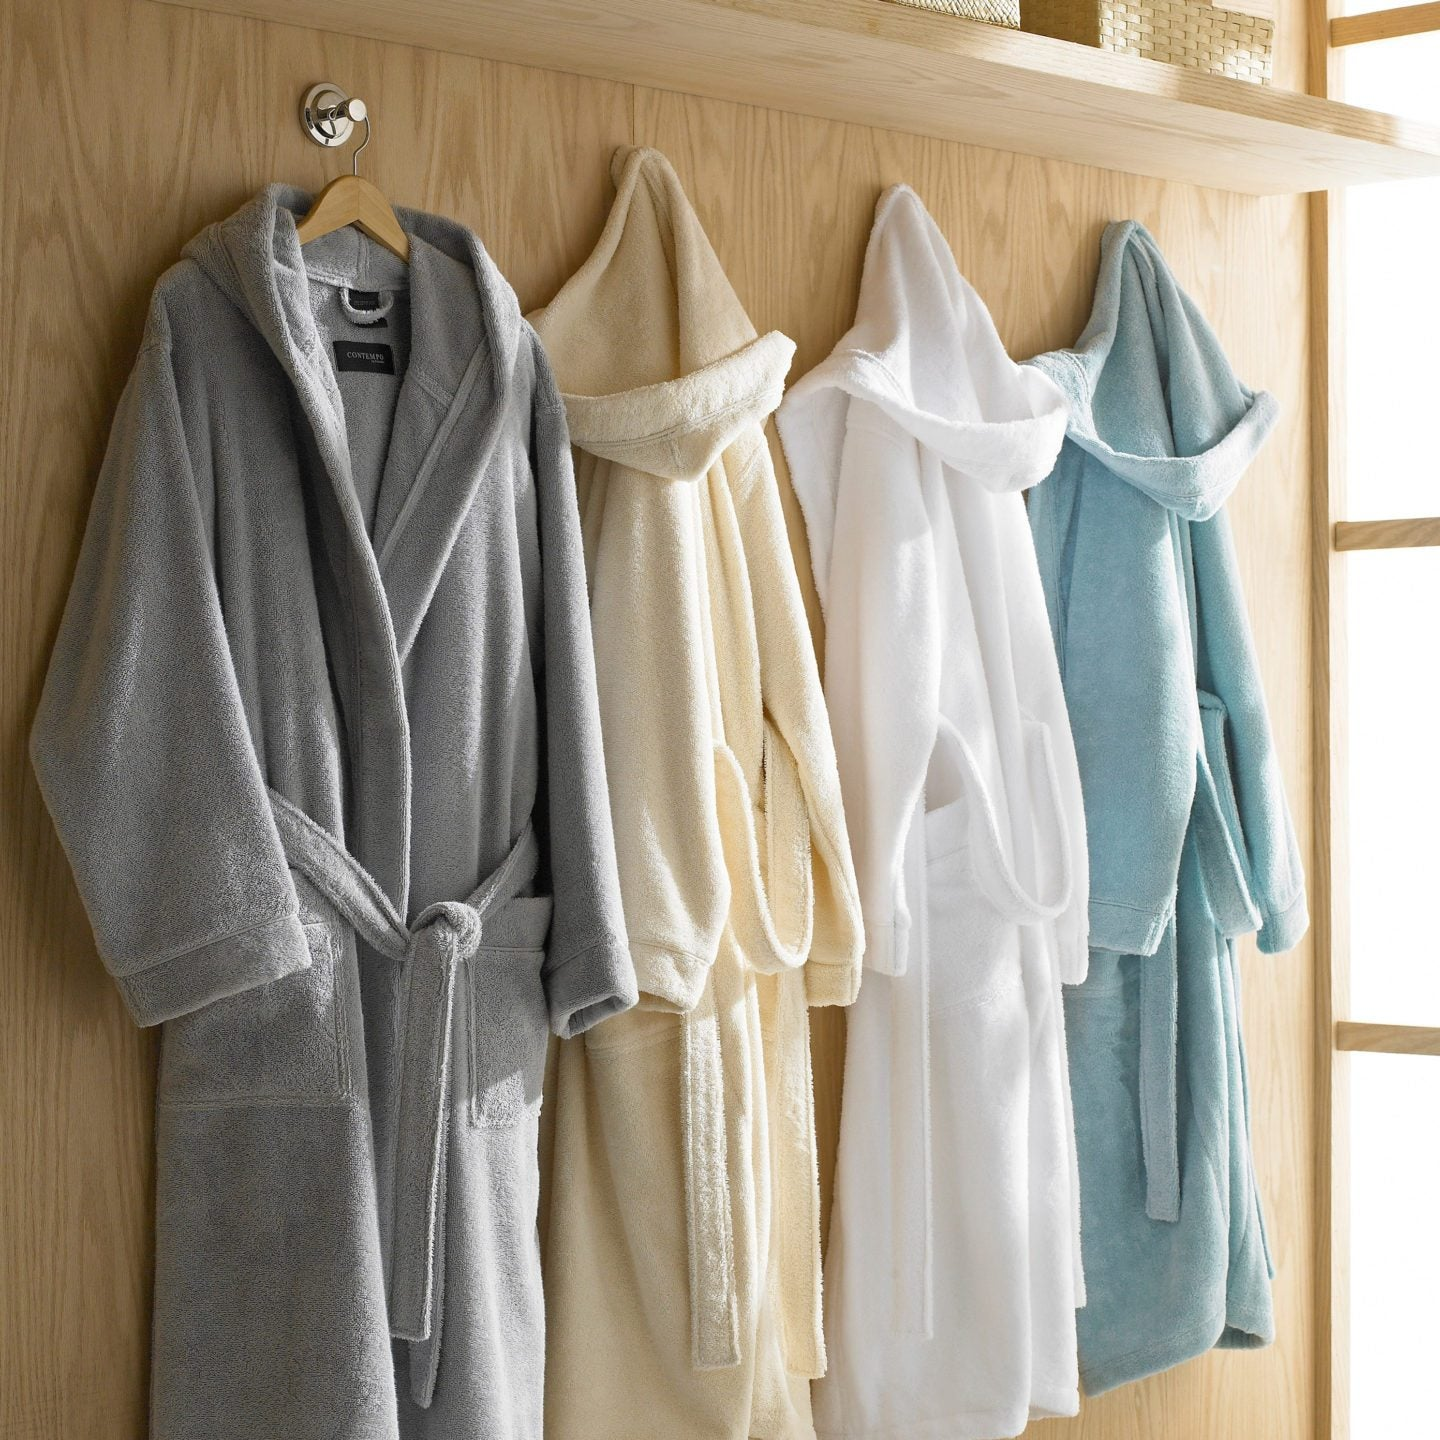 980d063e28 Top 5 Reasons to Buy a Bathrobe - Overstock.com Tips   Ideas